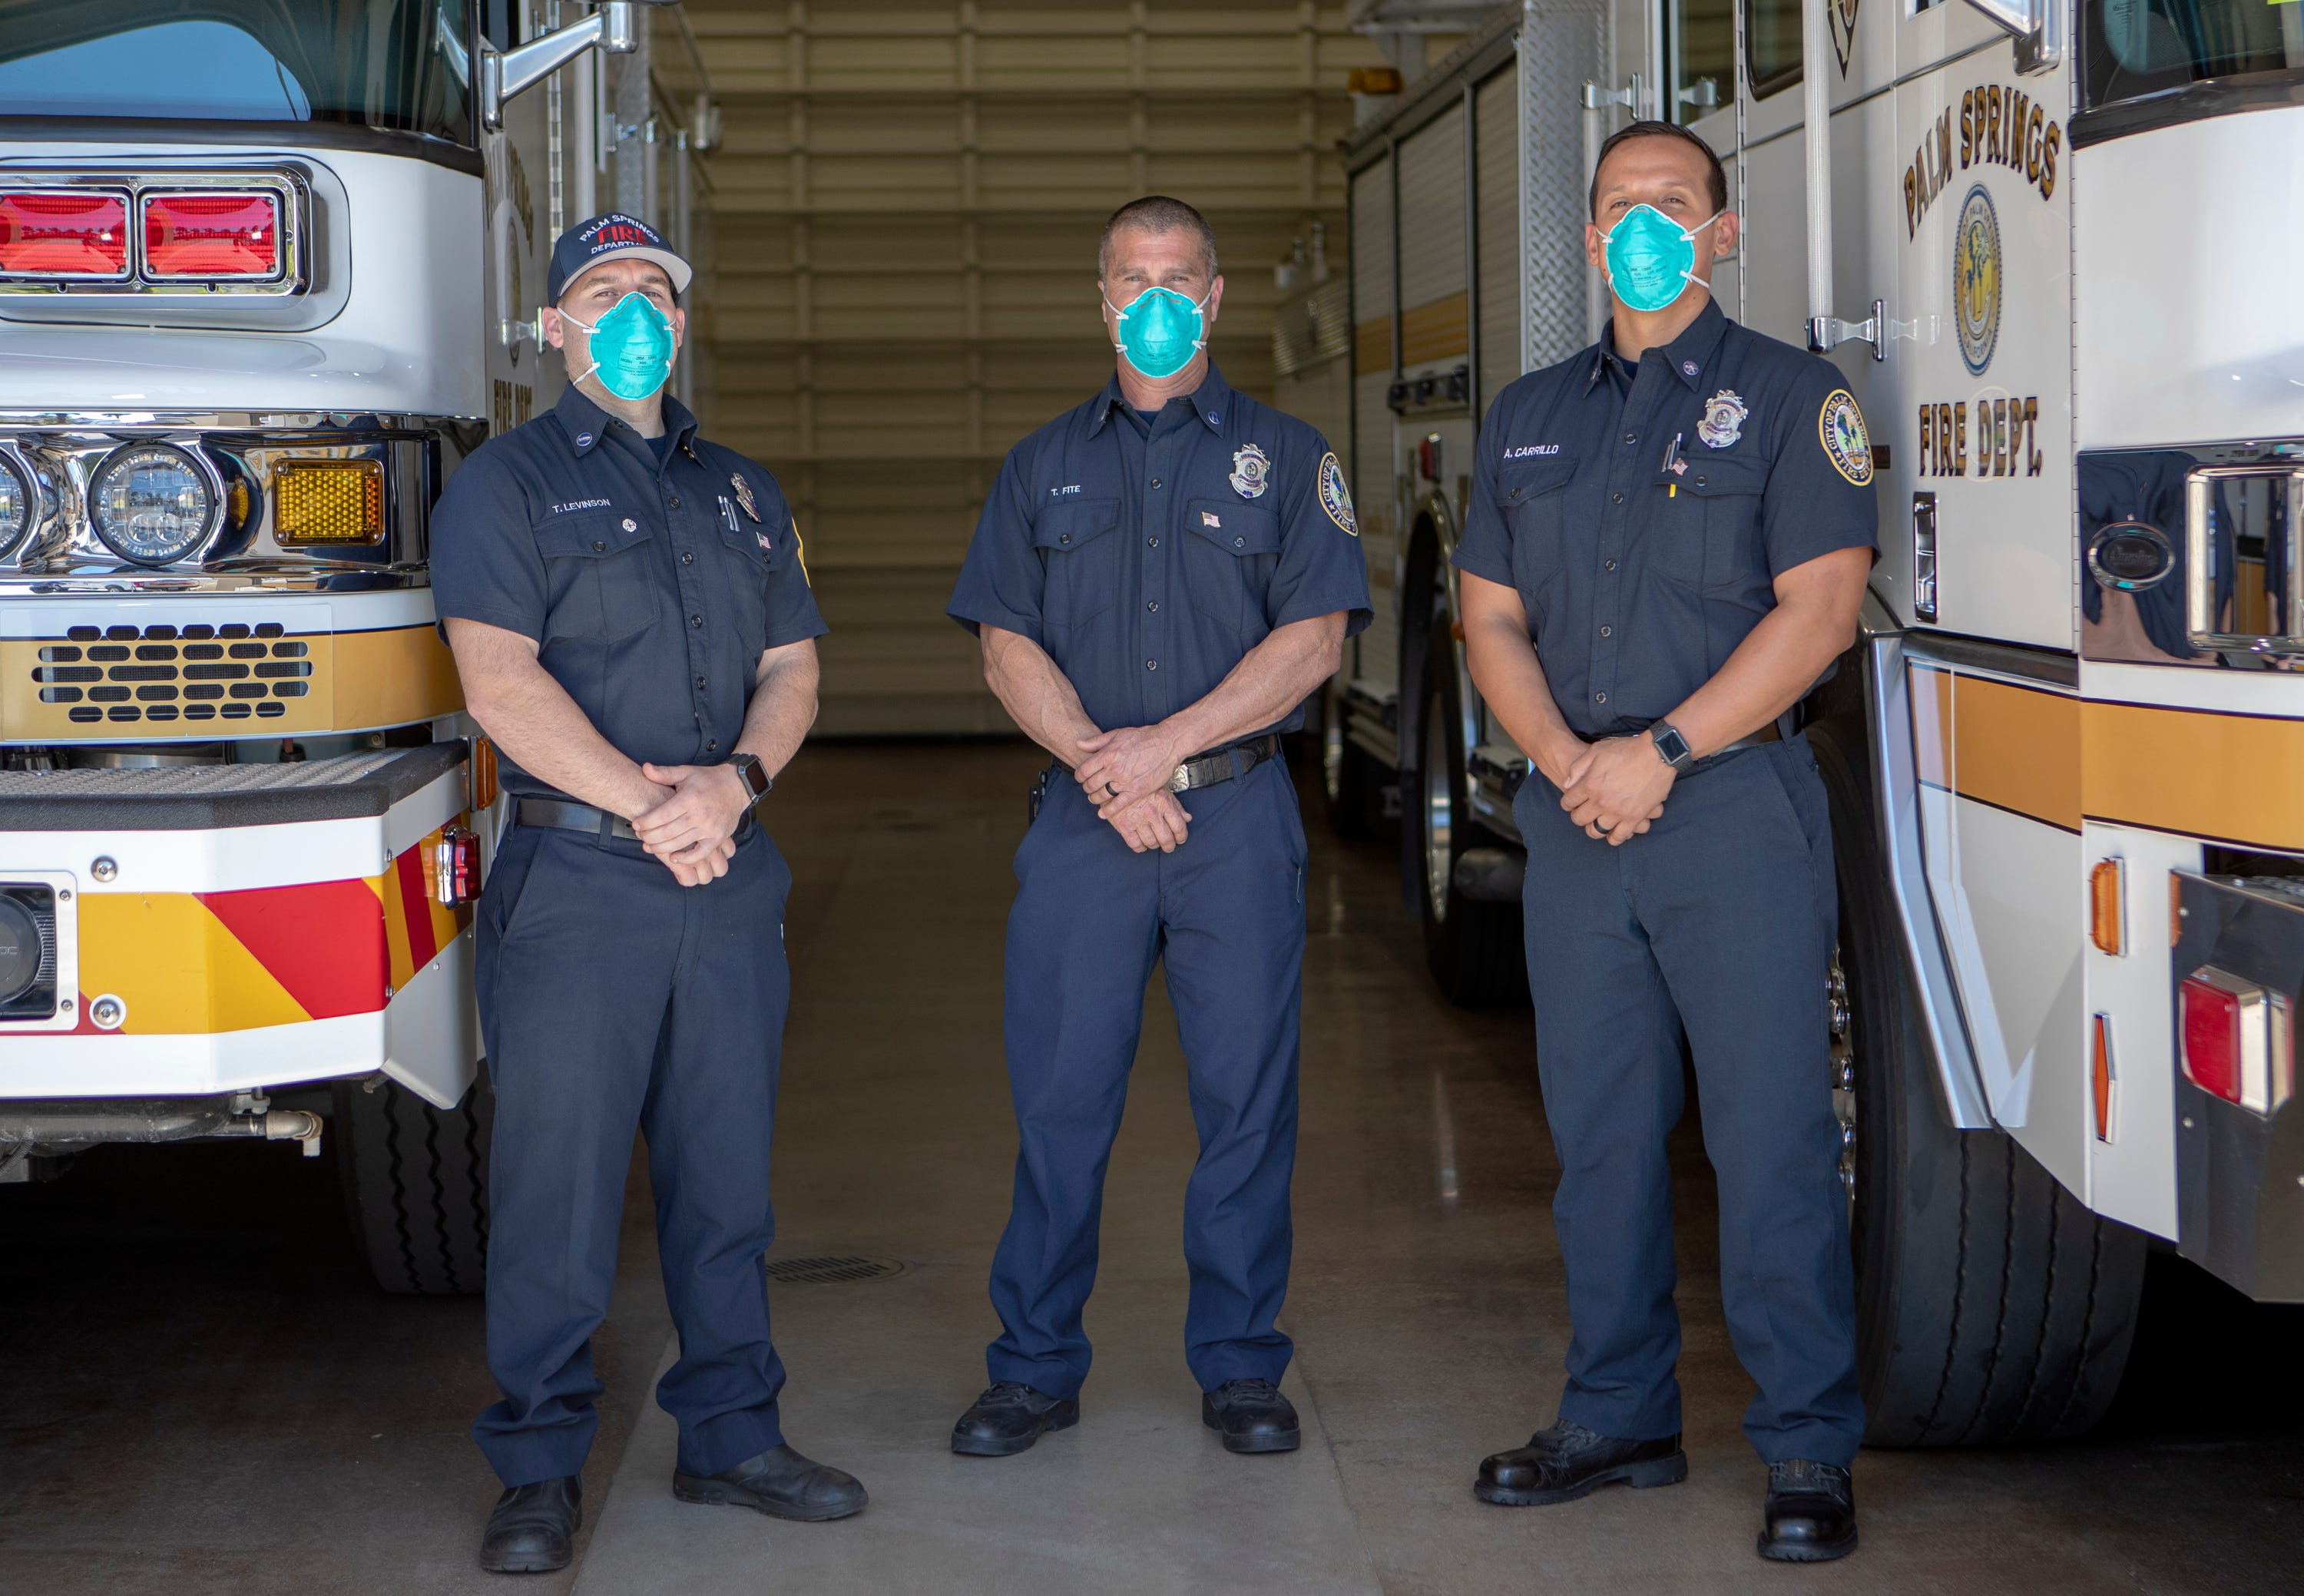 Palm Springs Fire Department Engineer Travis Levinson, left, Captain Todd Fite and Firefighter Alberto Carrillo are photographed inside Station 4 in Palm Springs, Calif., on Wednesday, April 15, 2020.